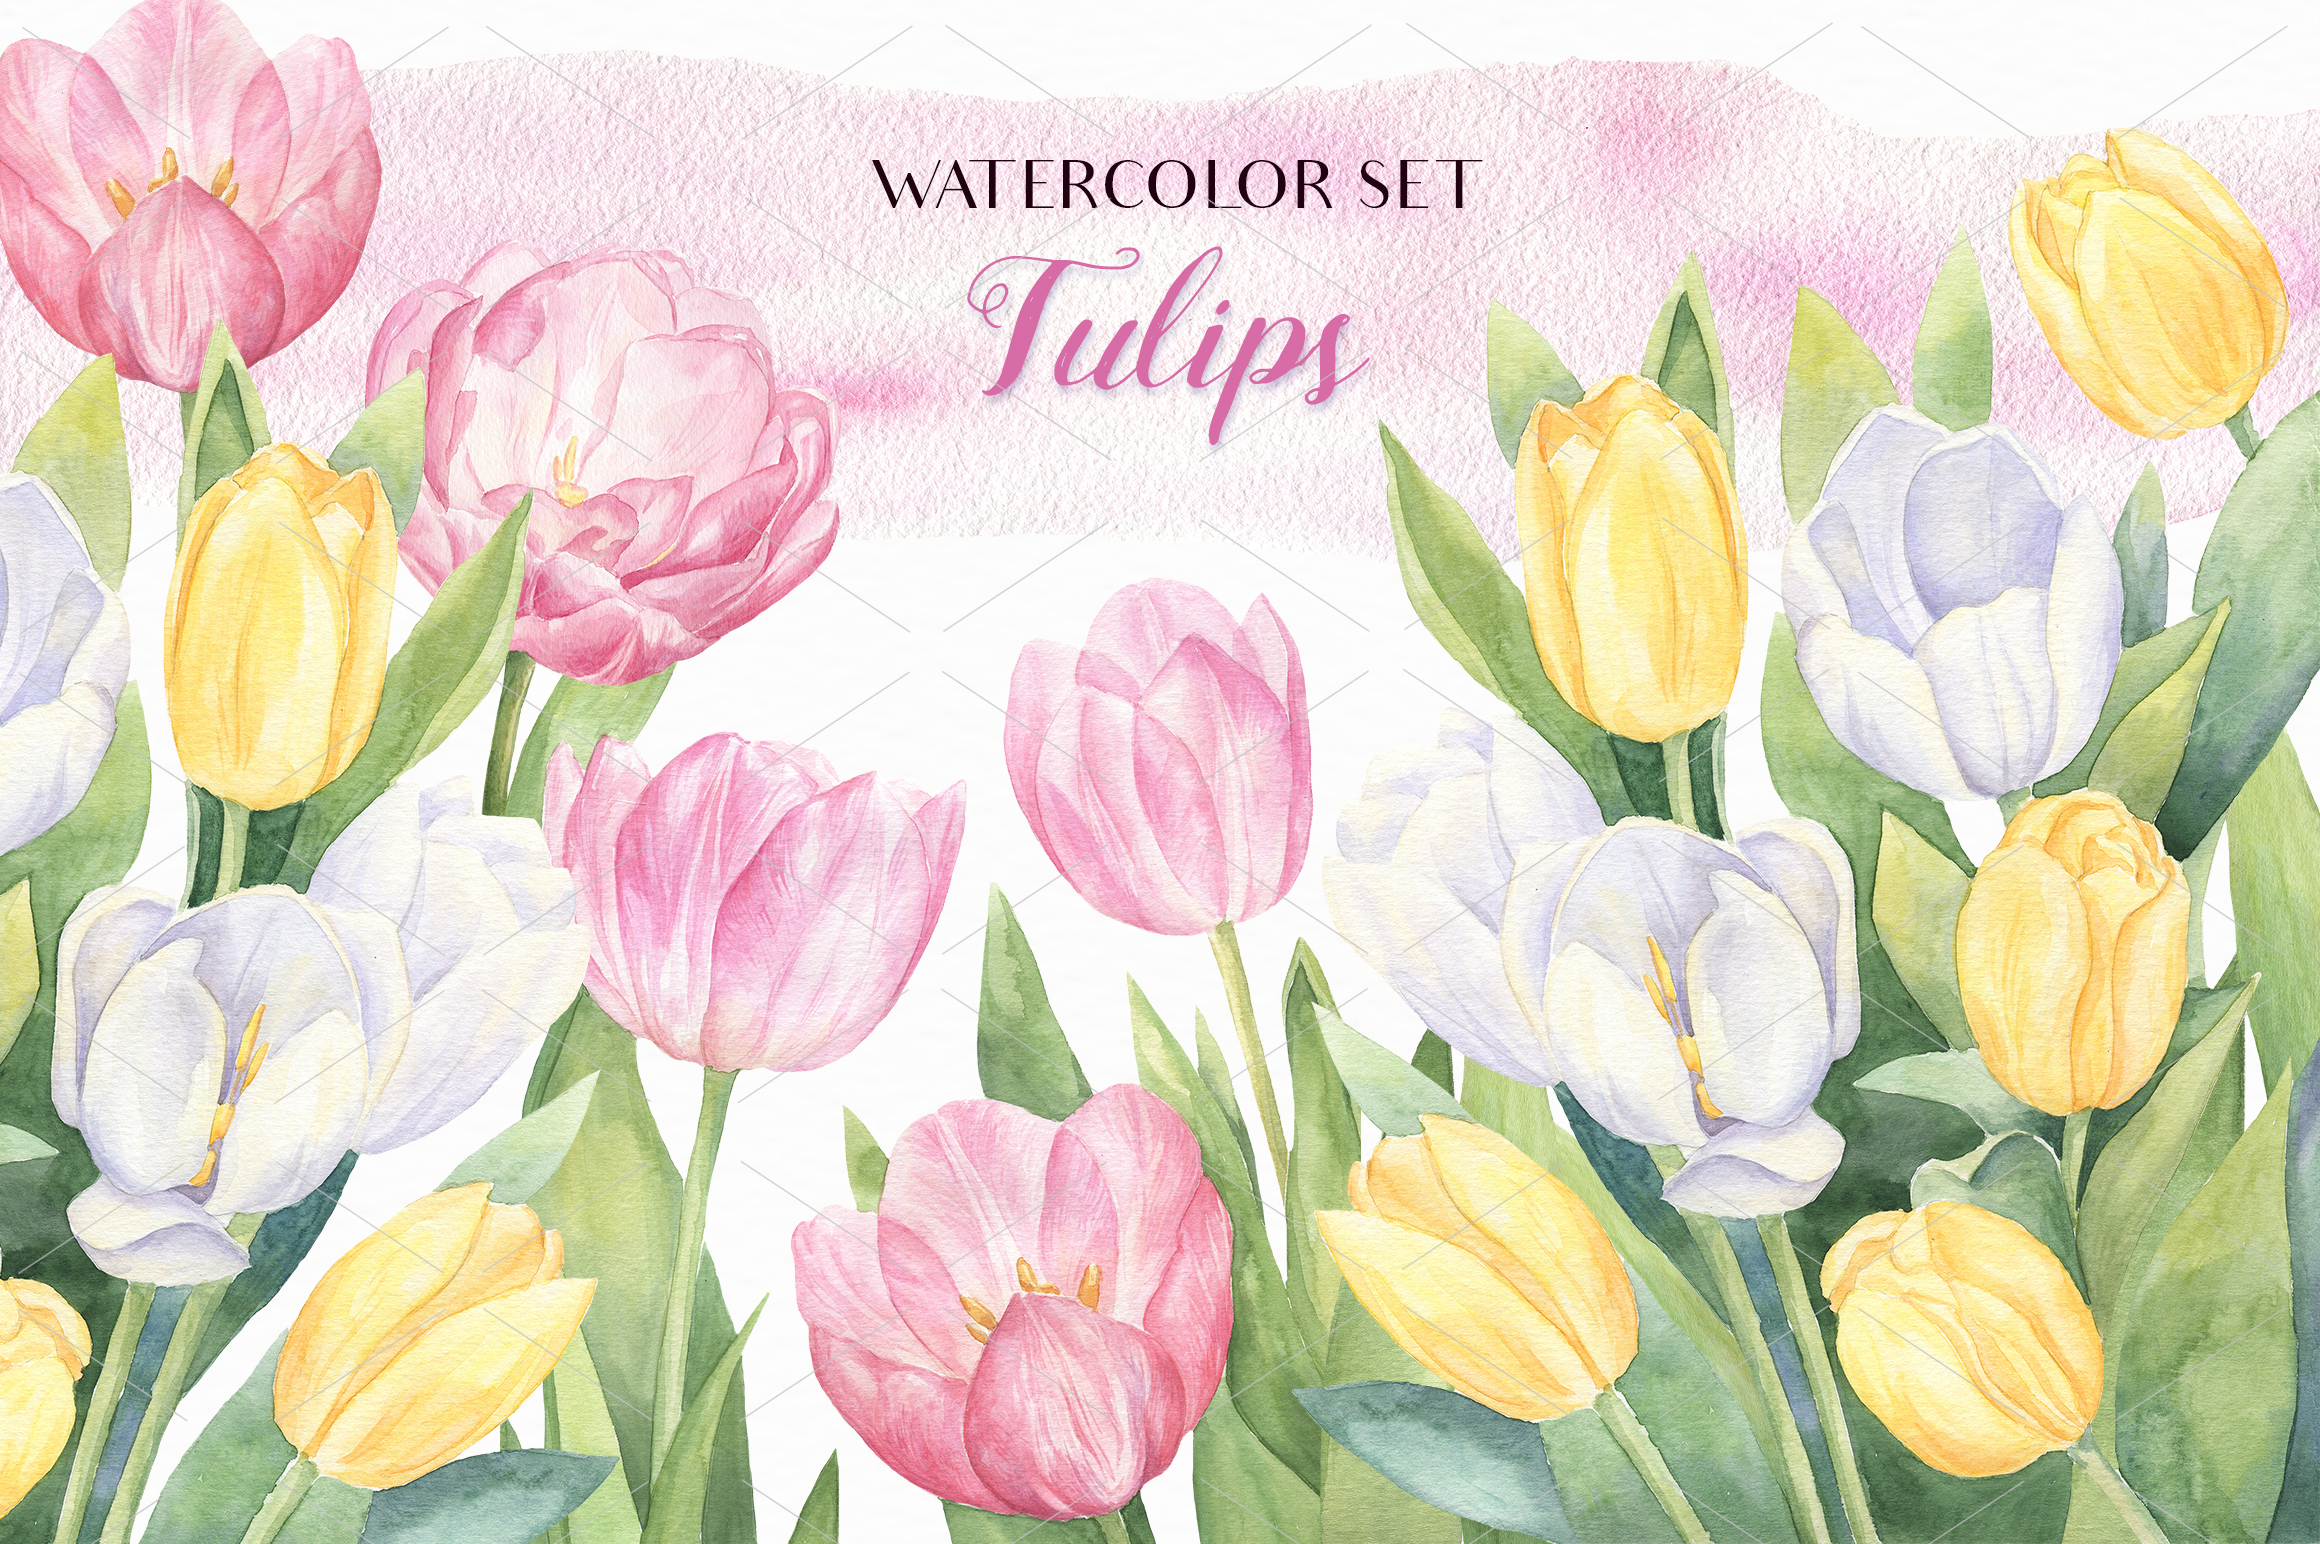 Watercolor Tulips example image 1